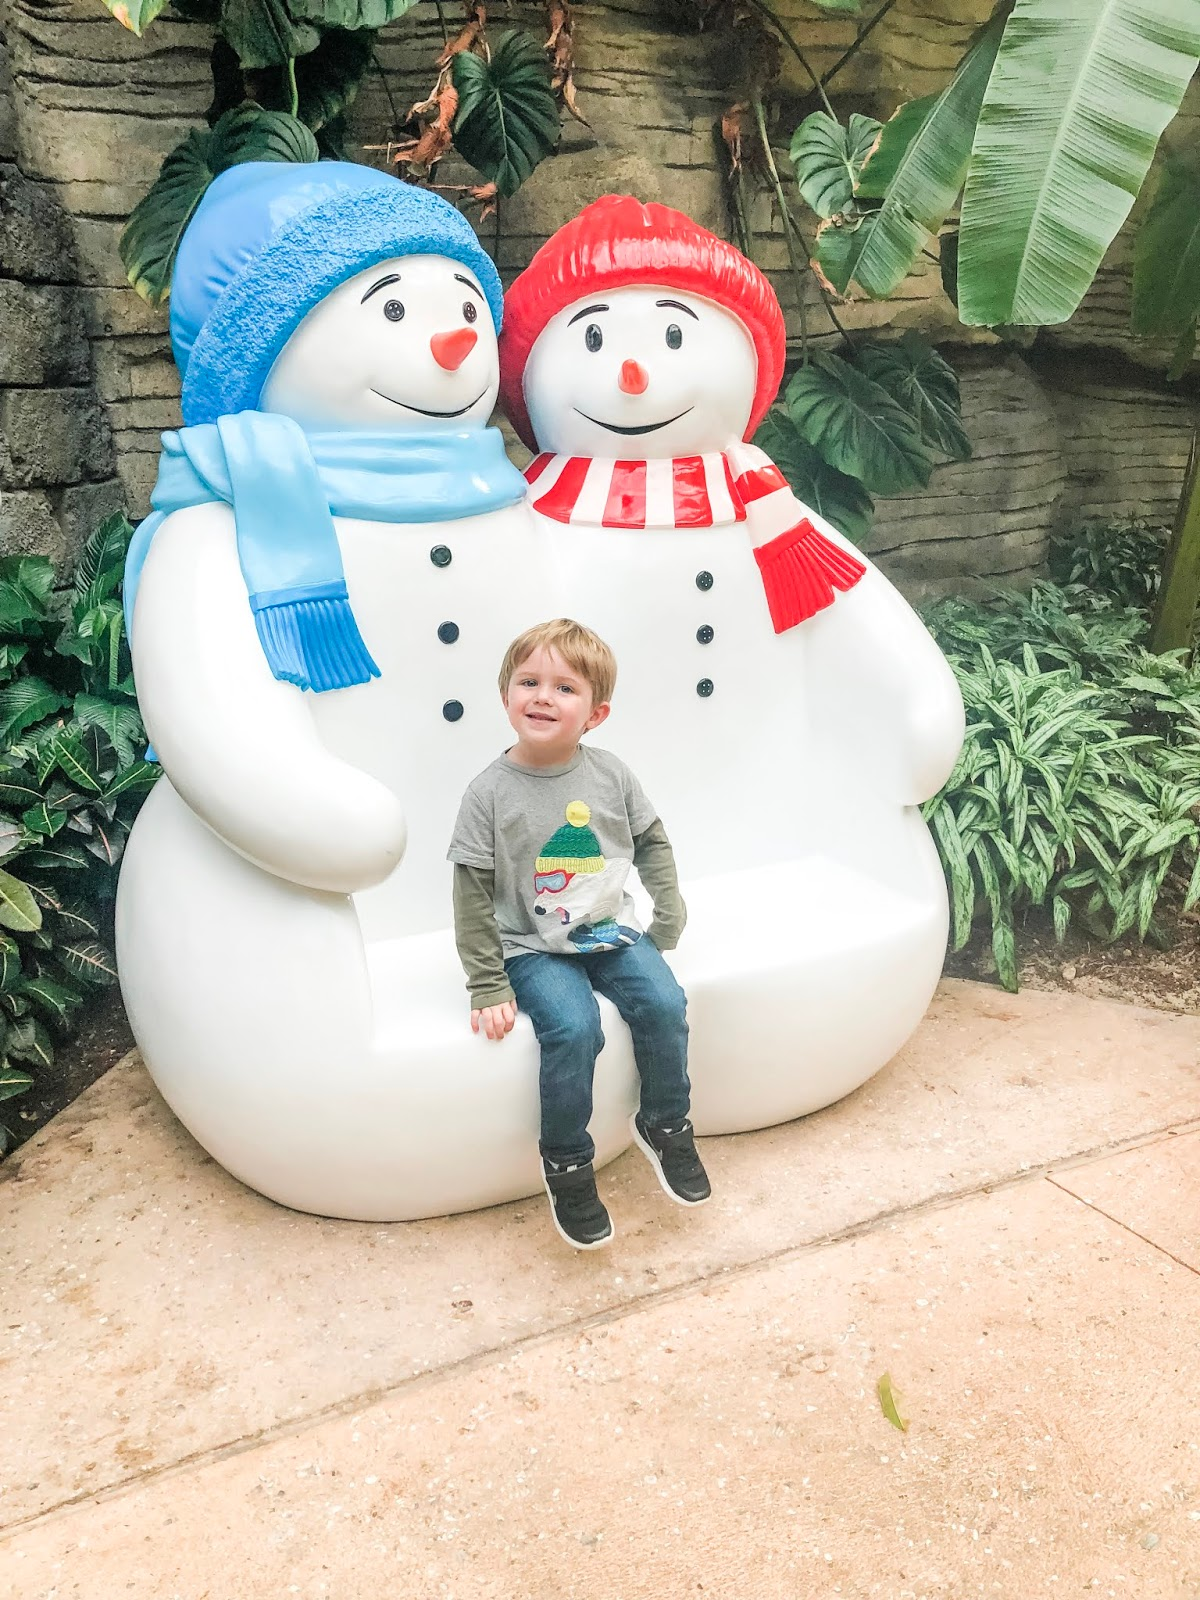 Come see our top five family friendly activities in Florida at Christmas. family friendly activities, gaylord, the flight academy, florida at christmas, holiday, your family, activities in florida, visit santa, laser light show, polar express, best christmas events, best christmas activities, best christmas ever, best family christmas,